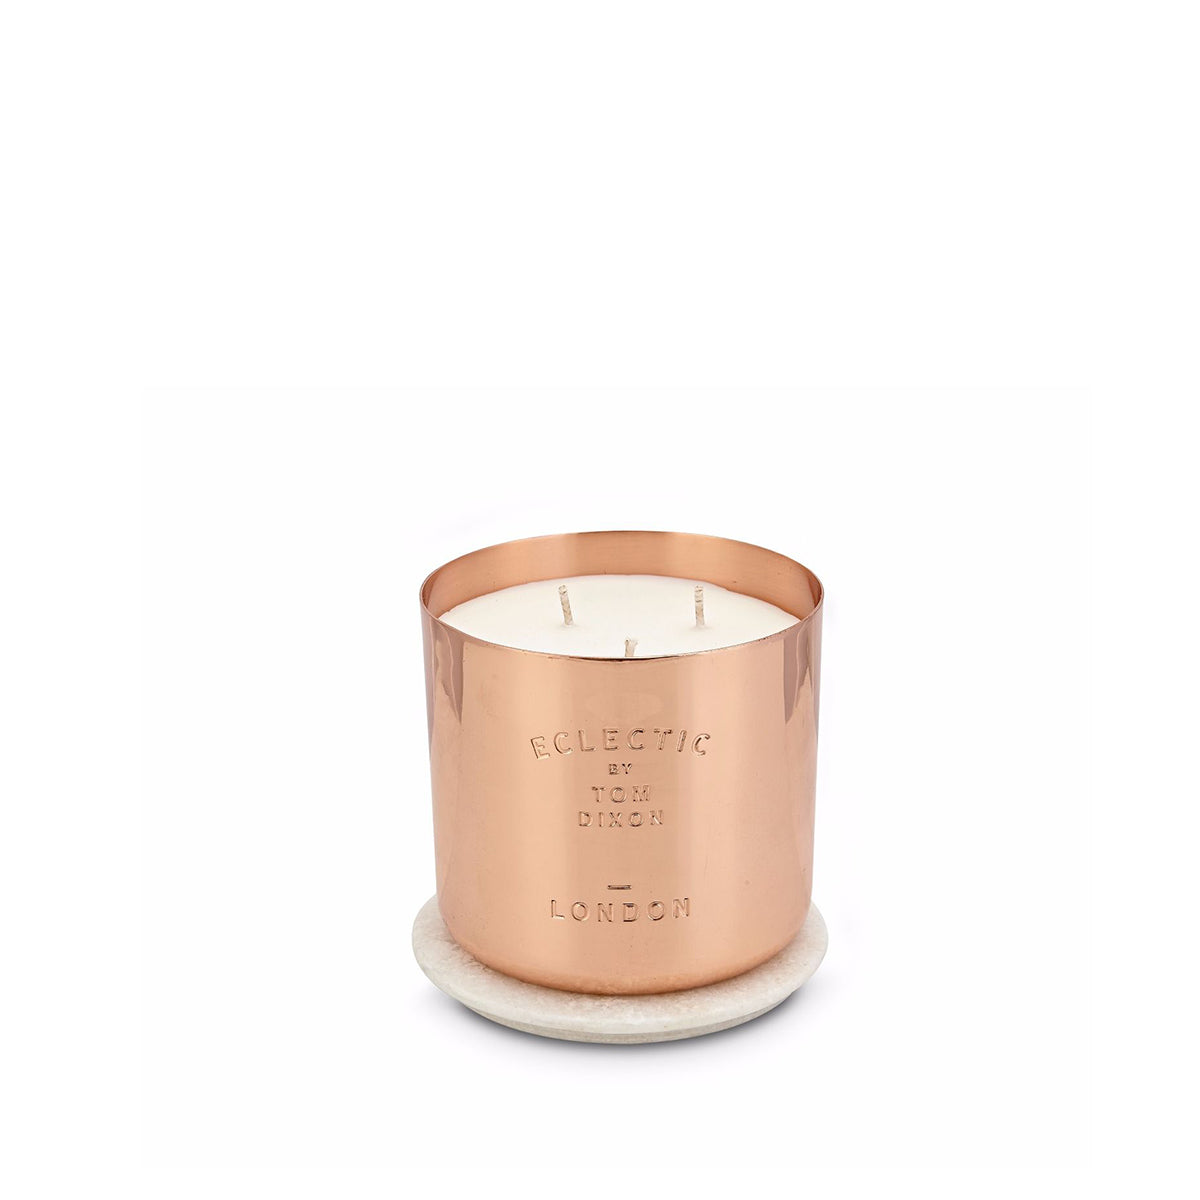 Eclectic London Candle Medium